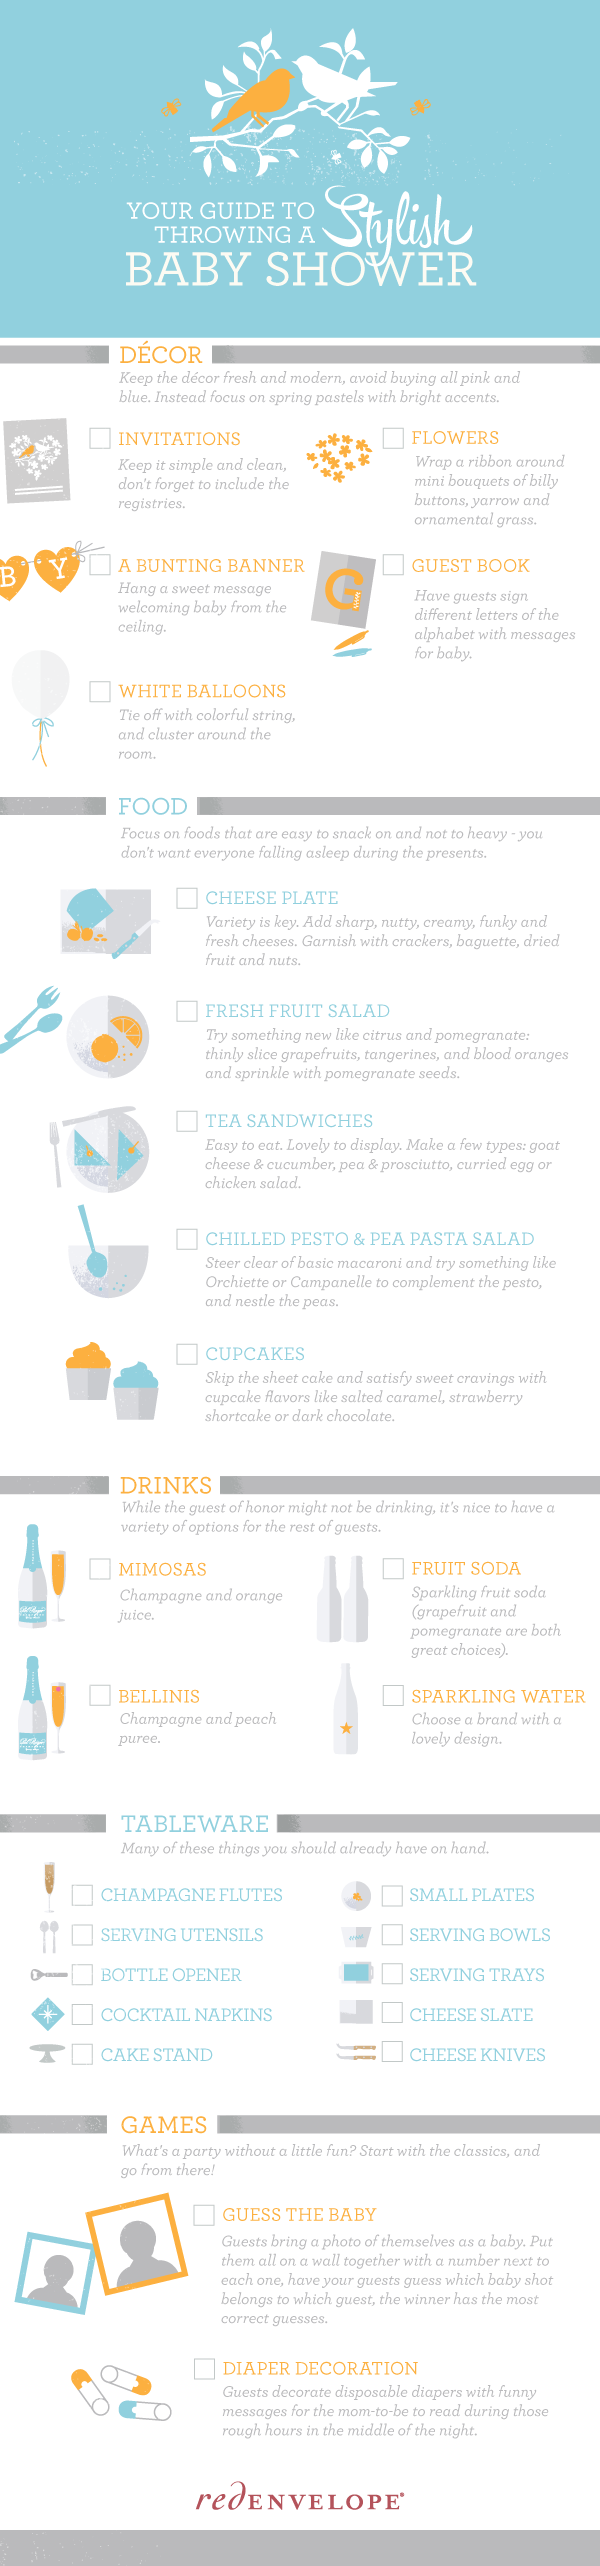 Throwing a Baby Shower Infographic